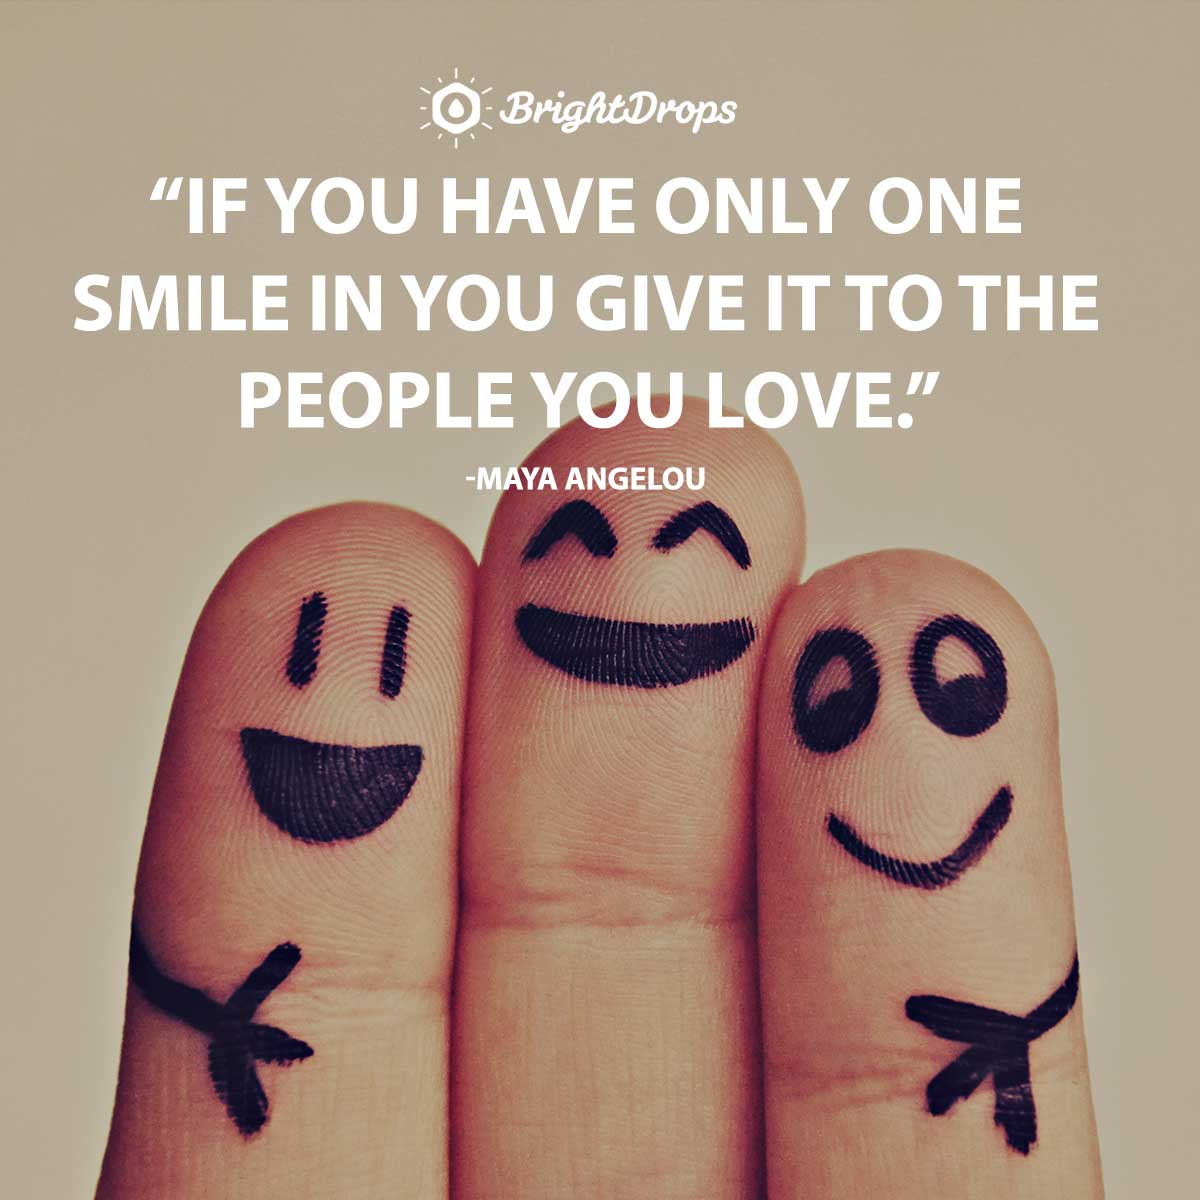 If you have only one smile in you give it to the people you love. -Maya Angelou